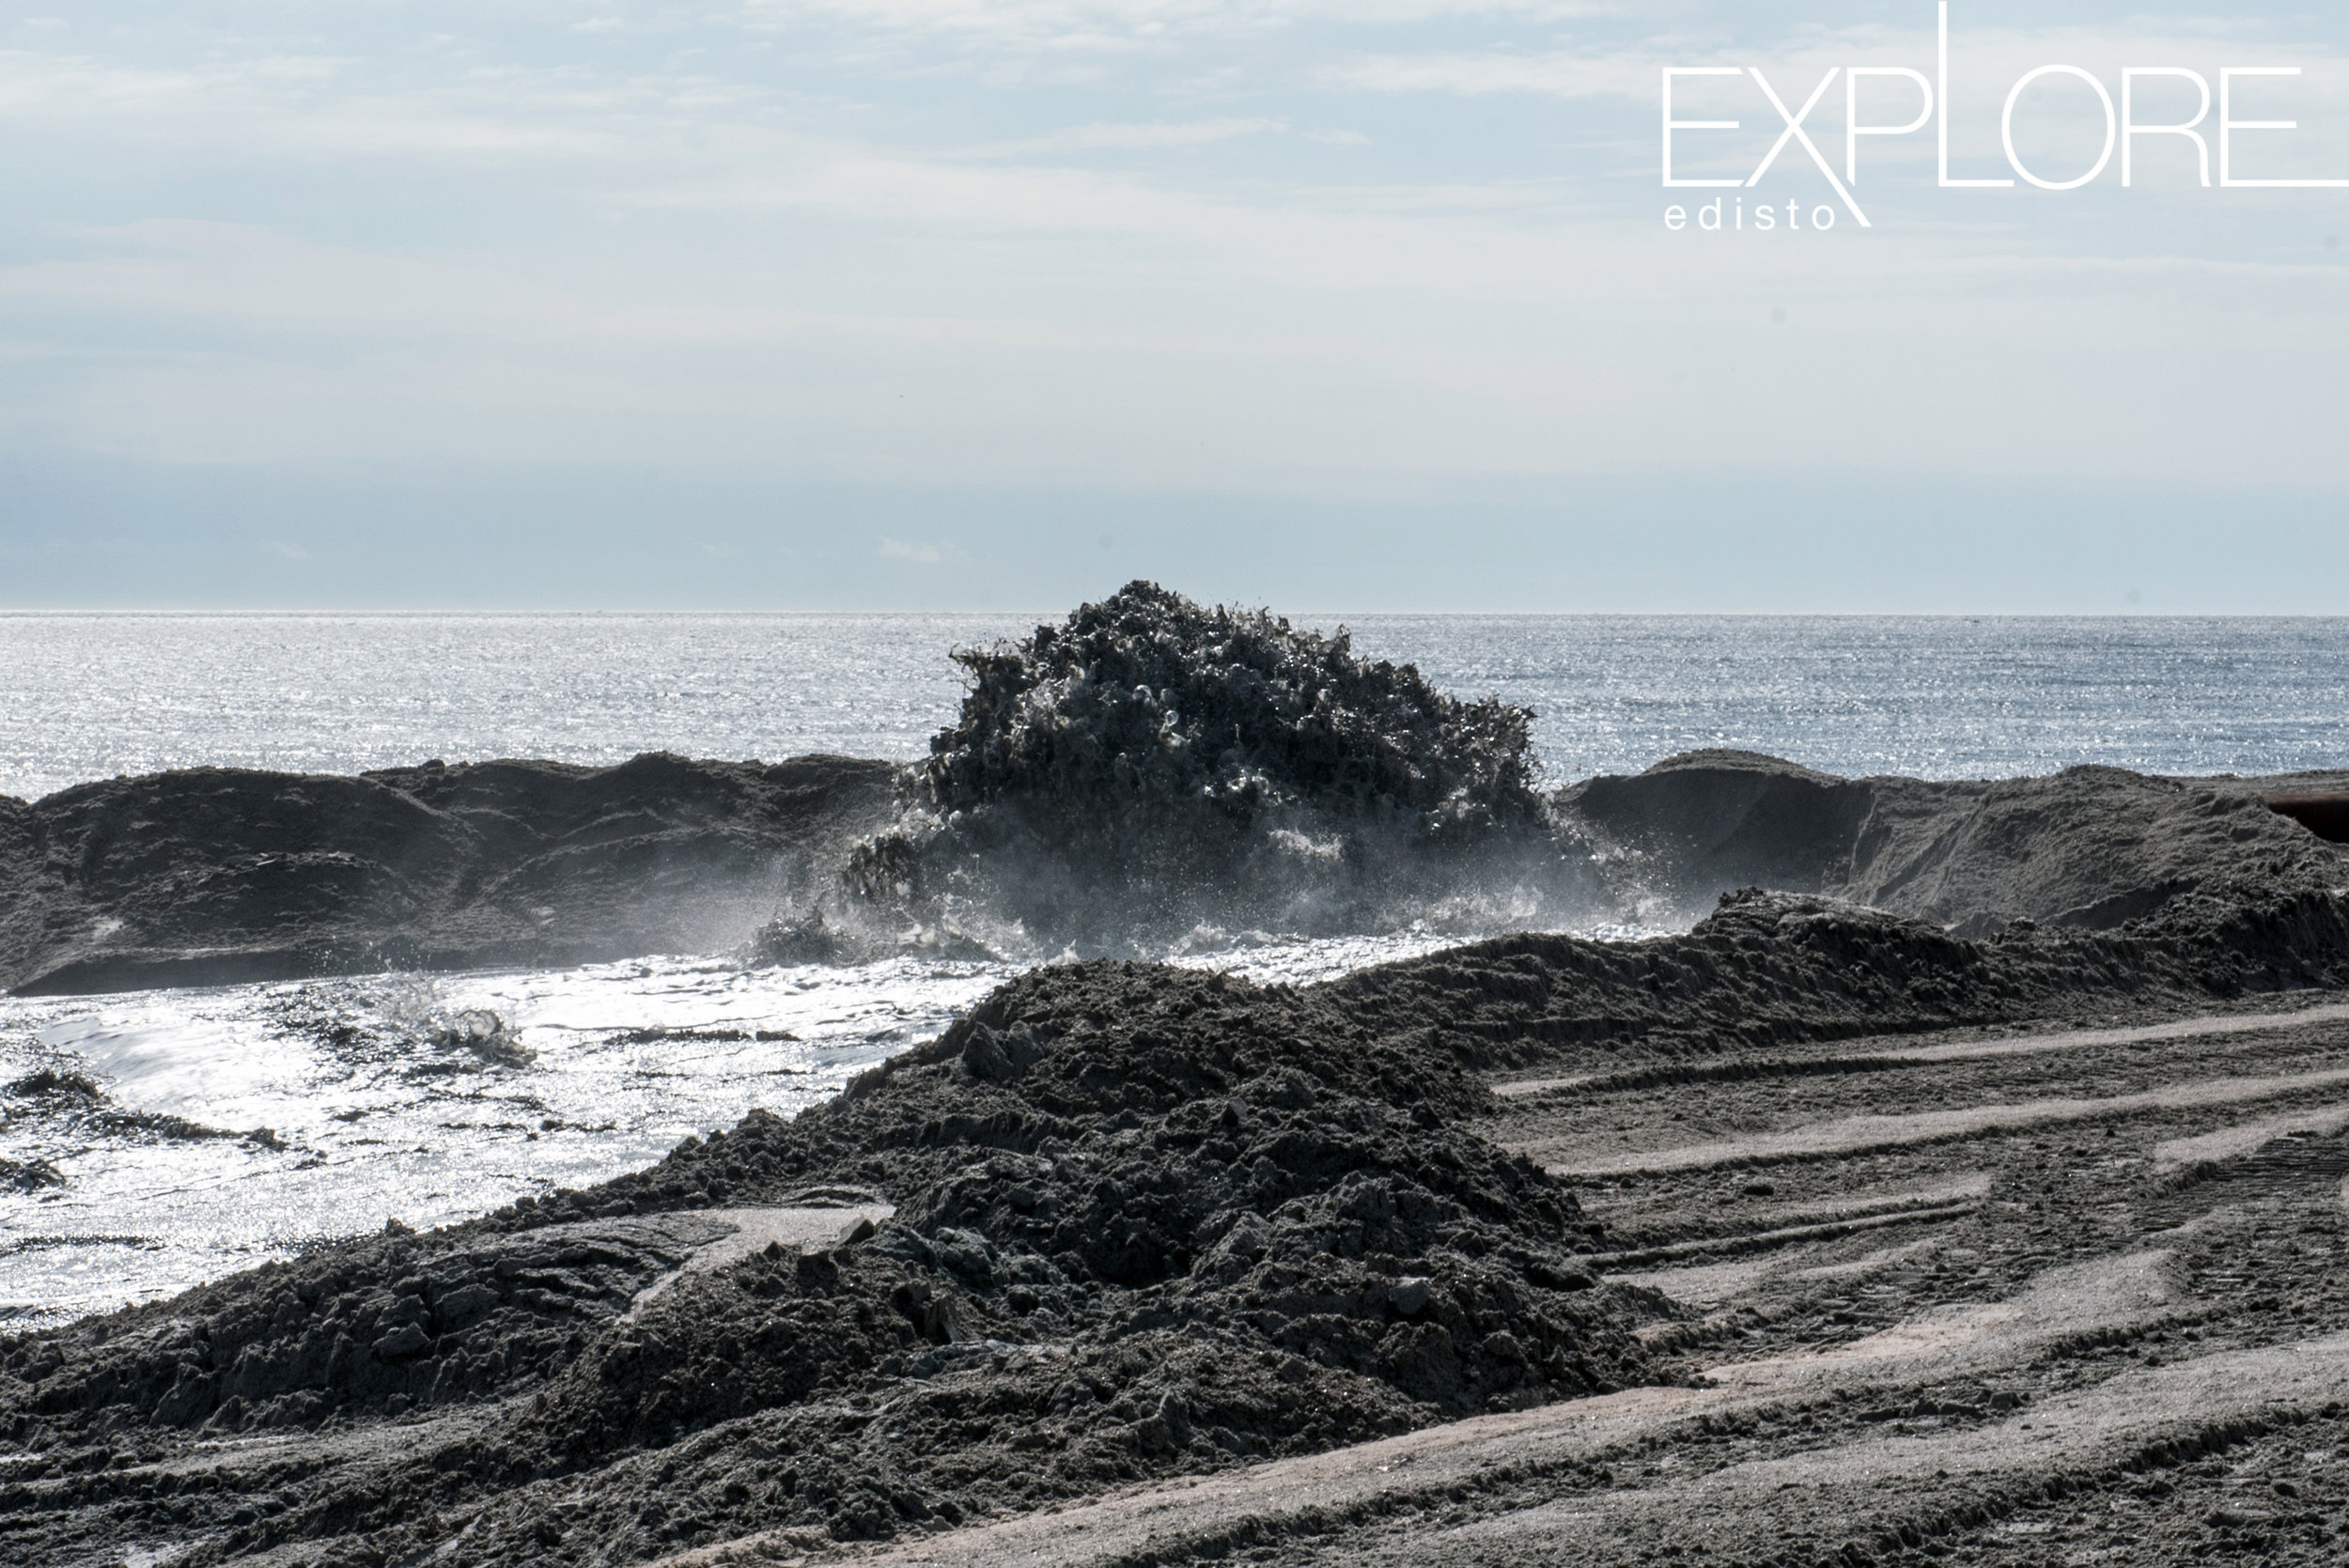 An explosion of sand as it is blasted onto the beach during beach nourishment at Edisto Beach, SC.